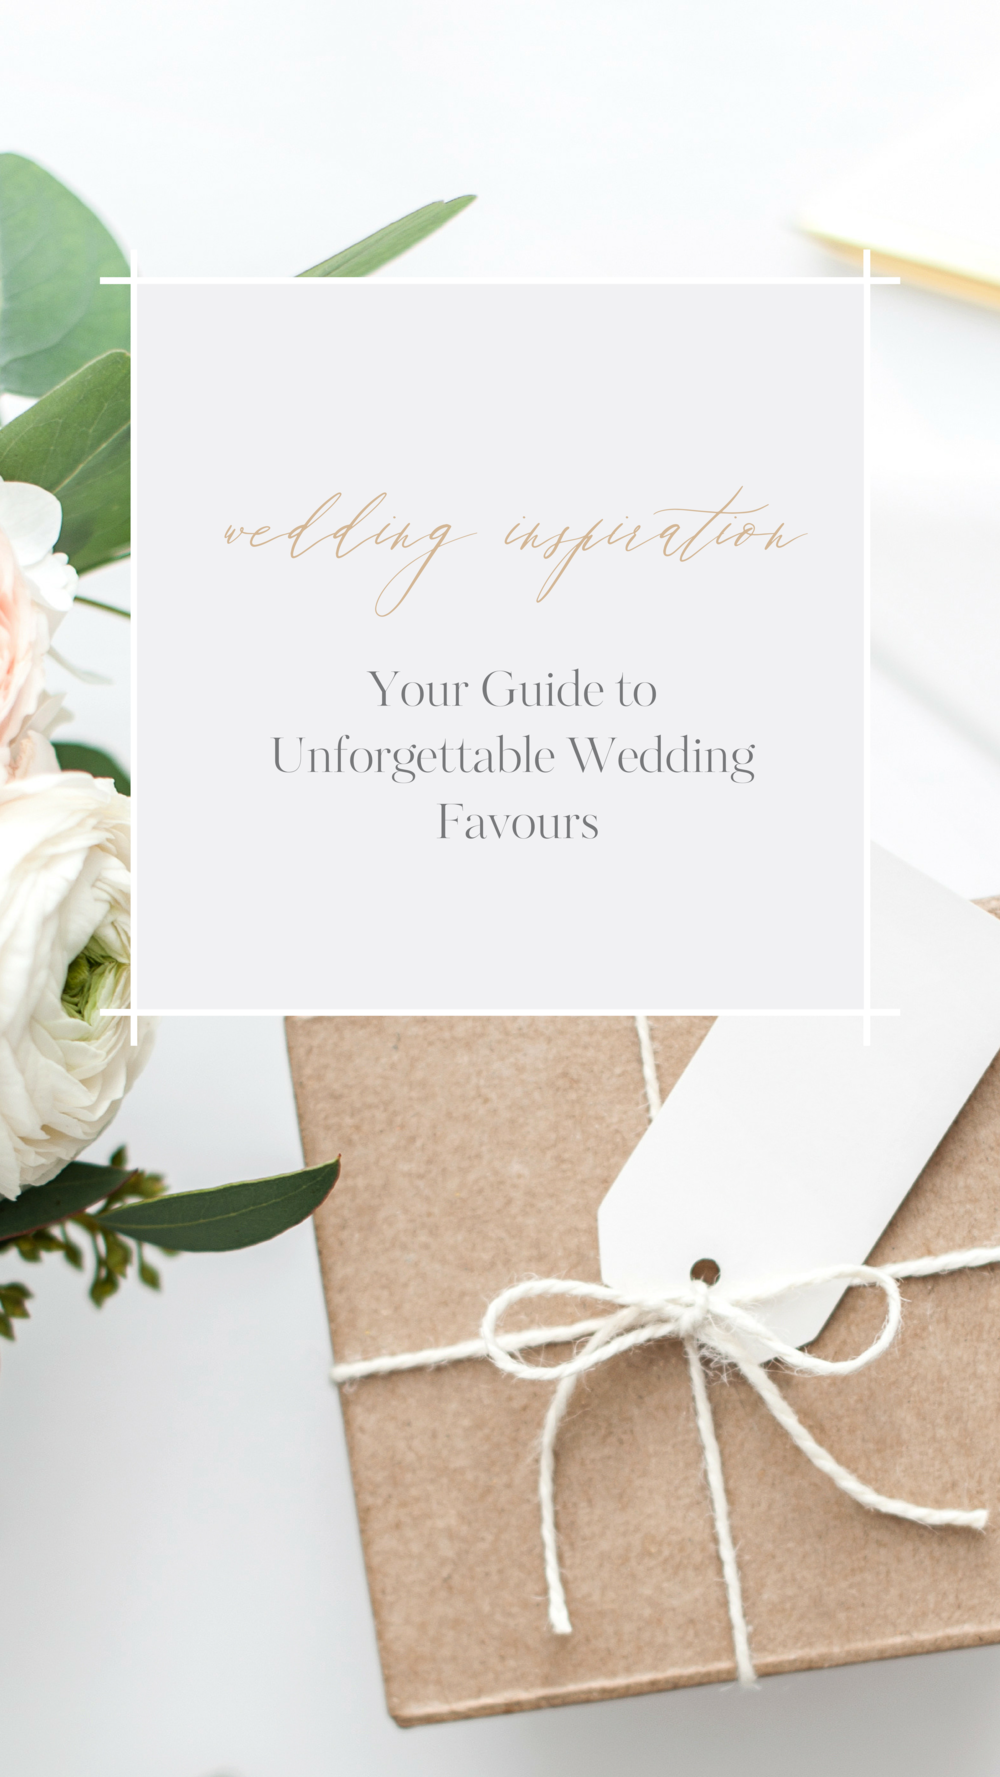 Your Guide to Unforgettable Wedding Favours.png